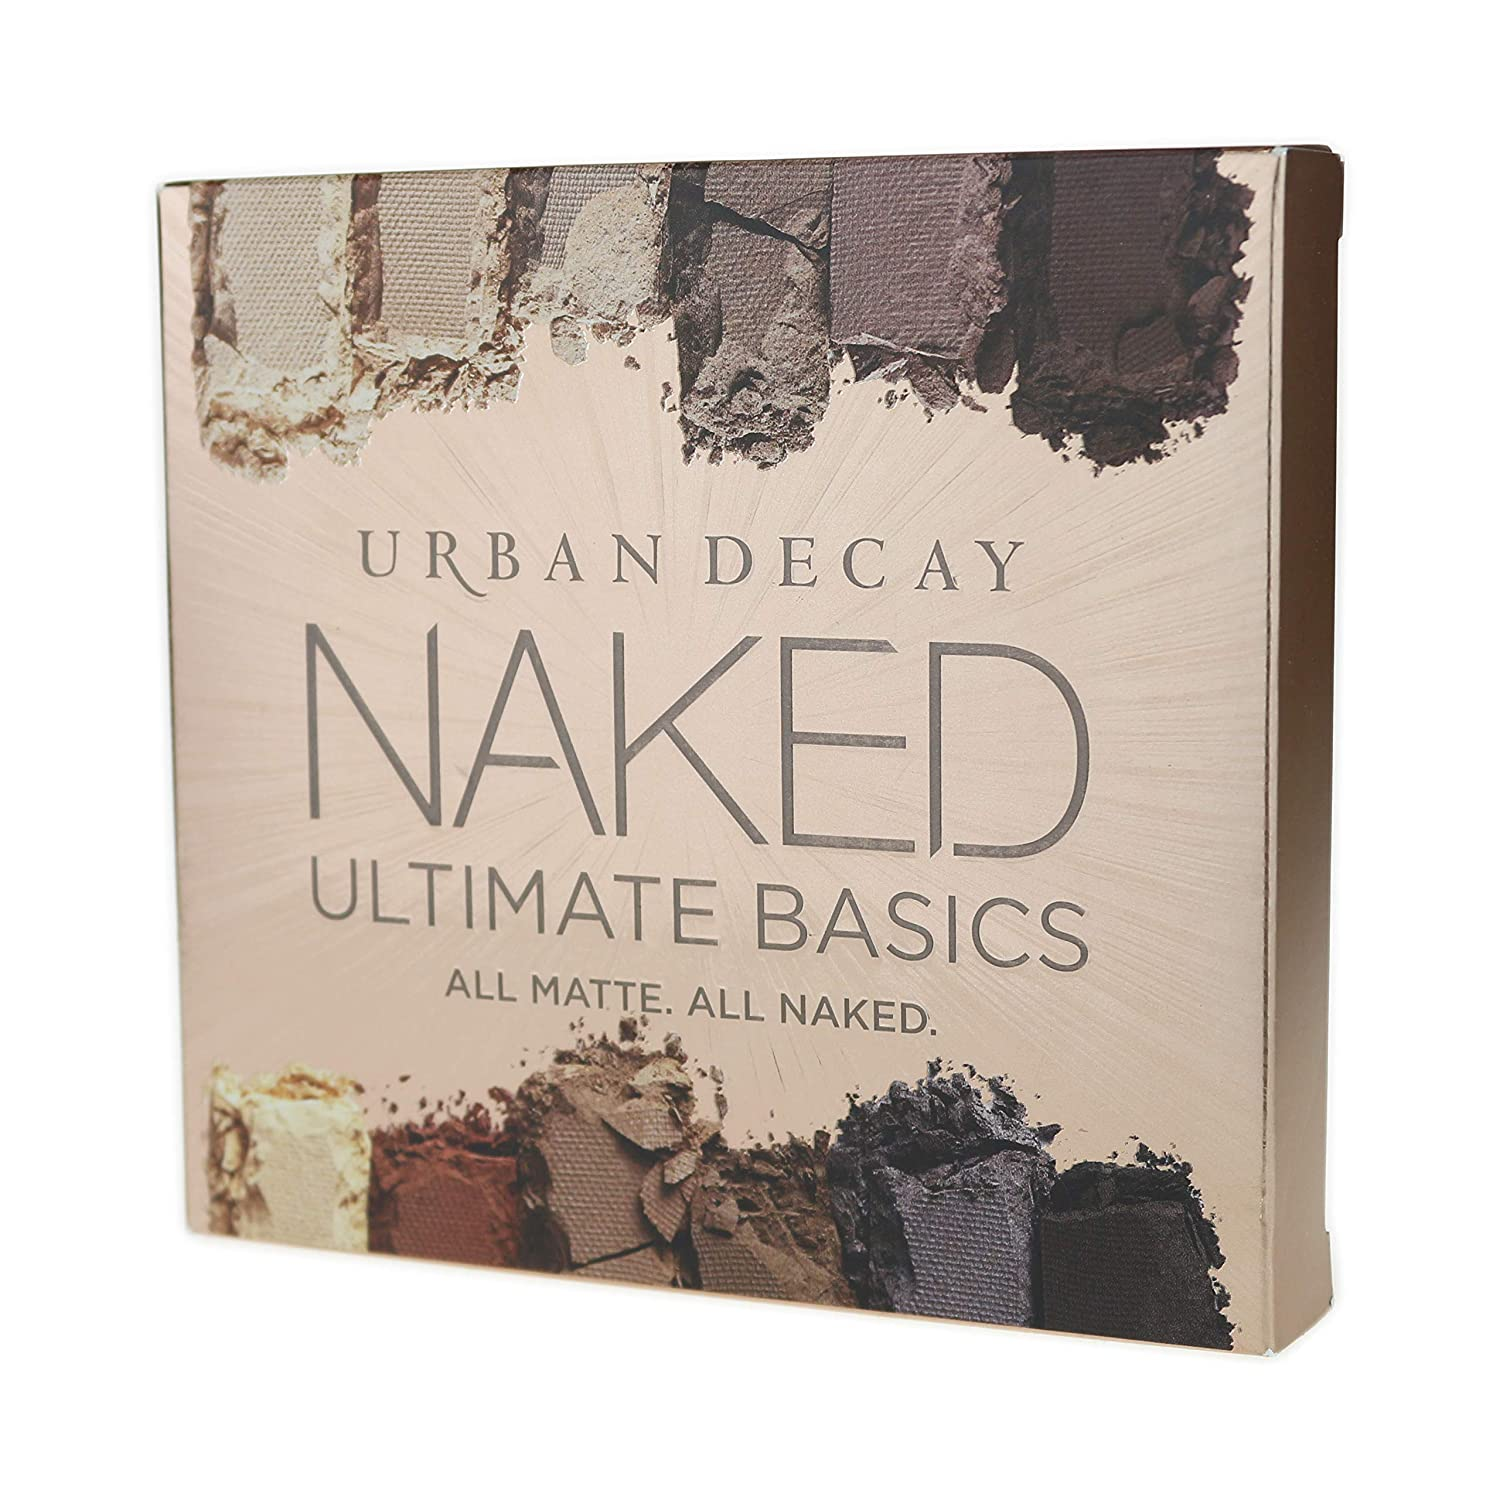 Naked Ultimate Basics All Matte. All Naked. Naked eye shadow palette by Naked Ultimate Basics All Matte All Naked Urban Decay